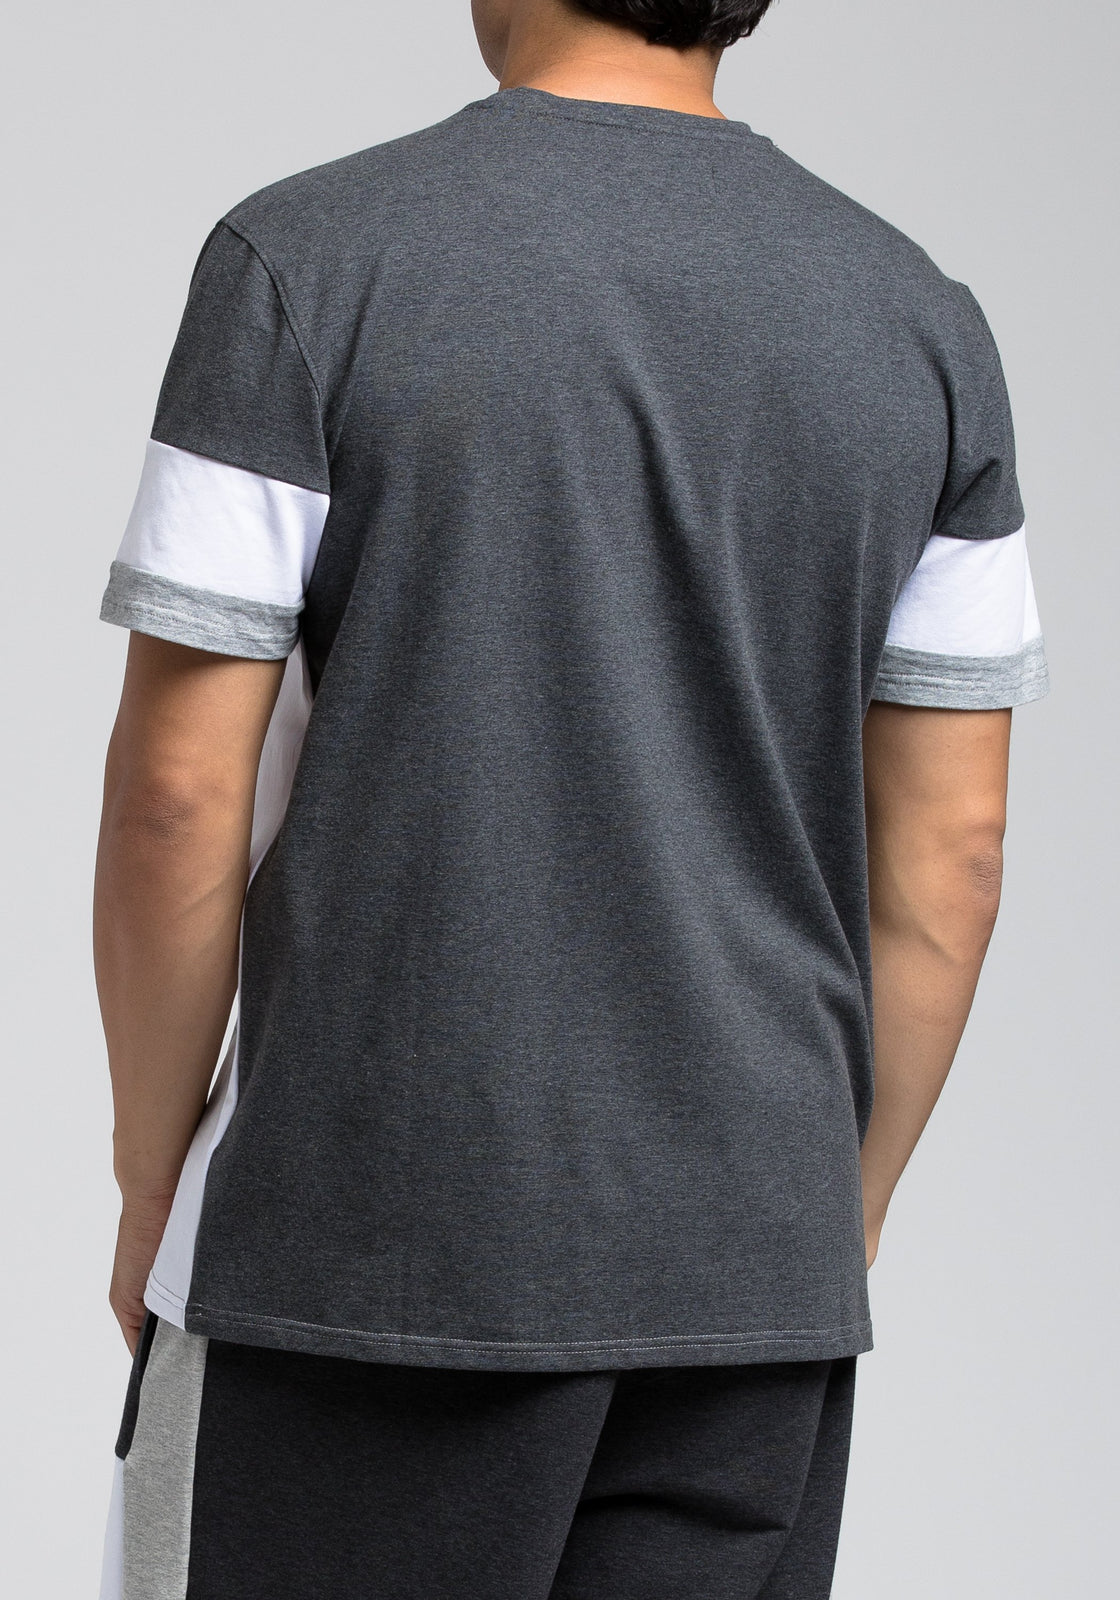 BP Block Tee - Color: Gray